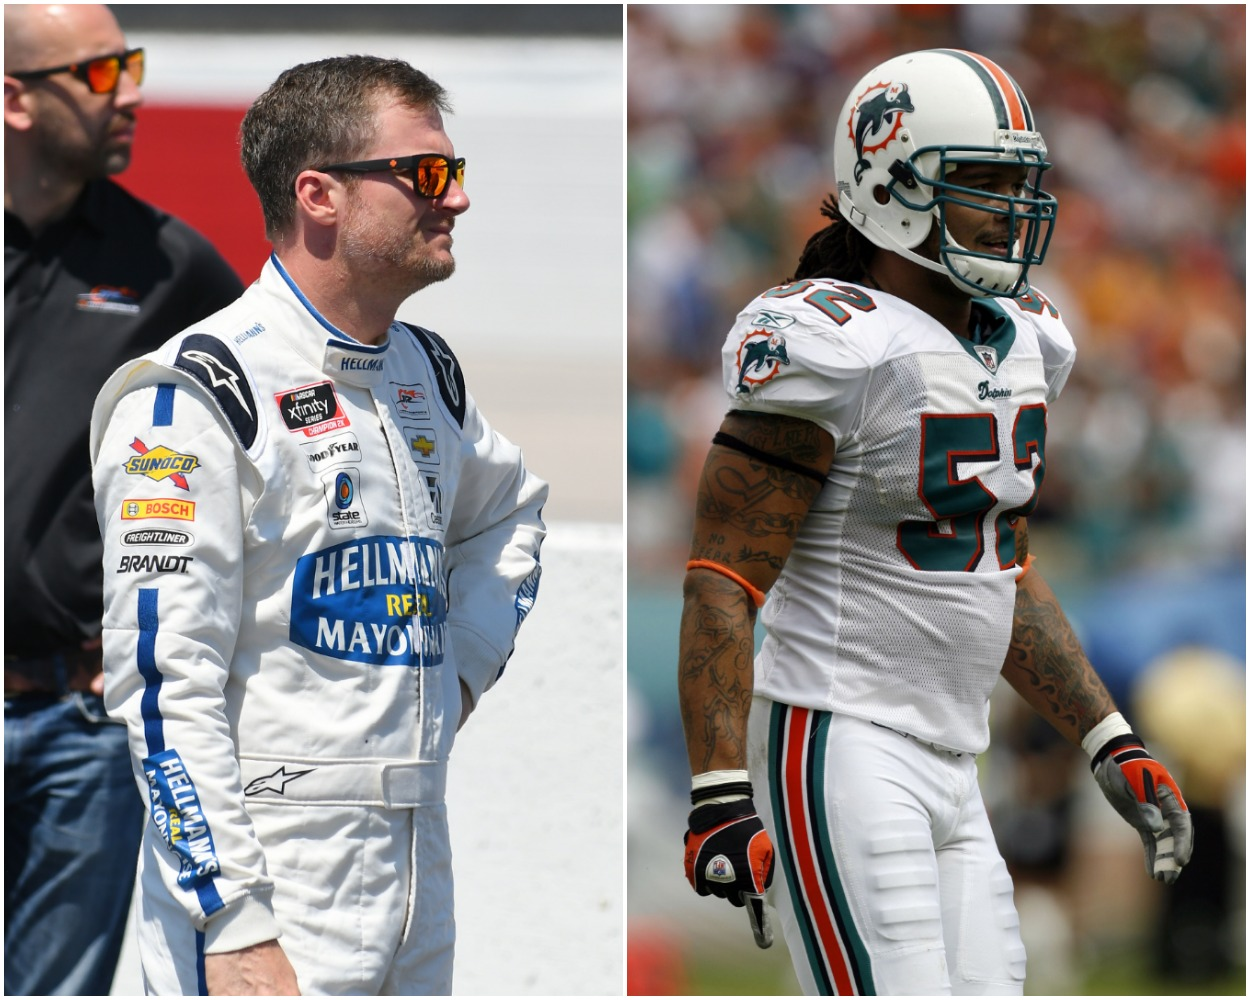 Dale Earnhardt Jr. Impressively Converted Former NFL Player Channing Crowder Into a Believer That NASCAR Drivers Are Athletes